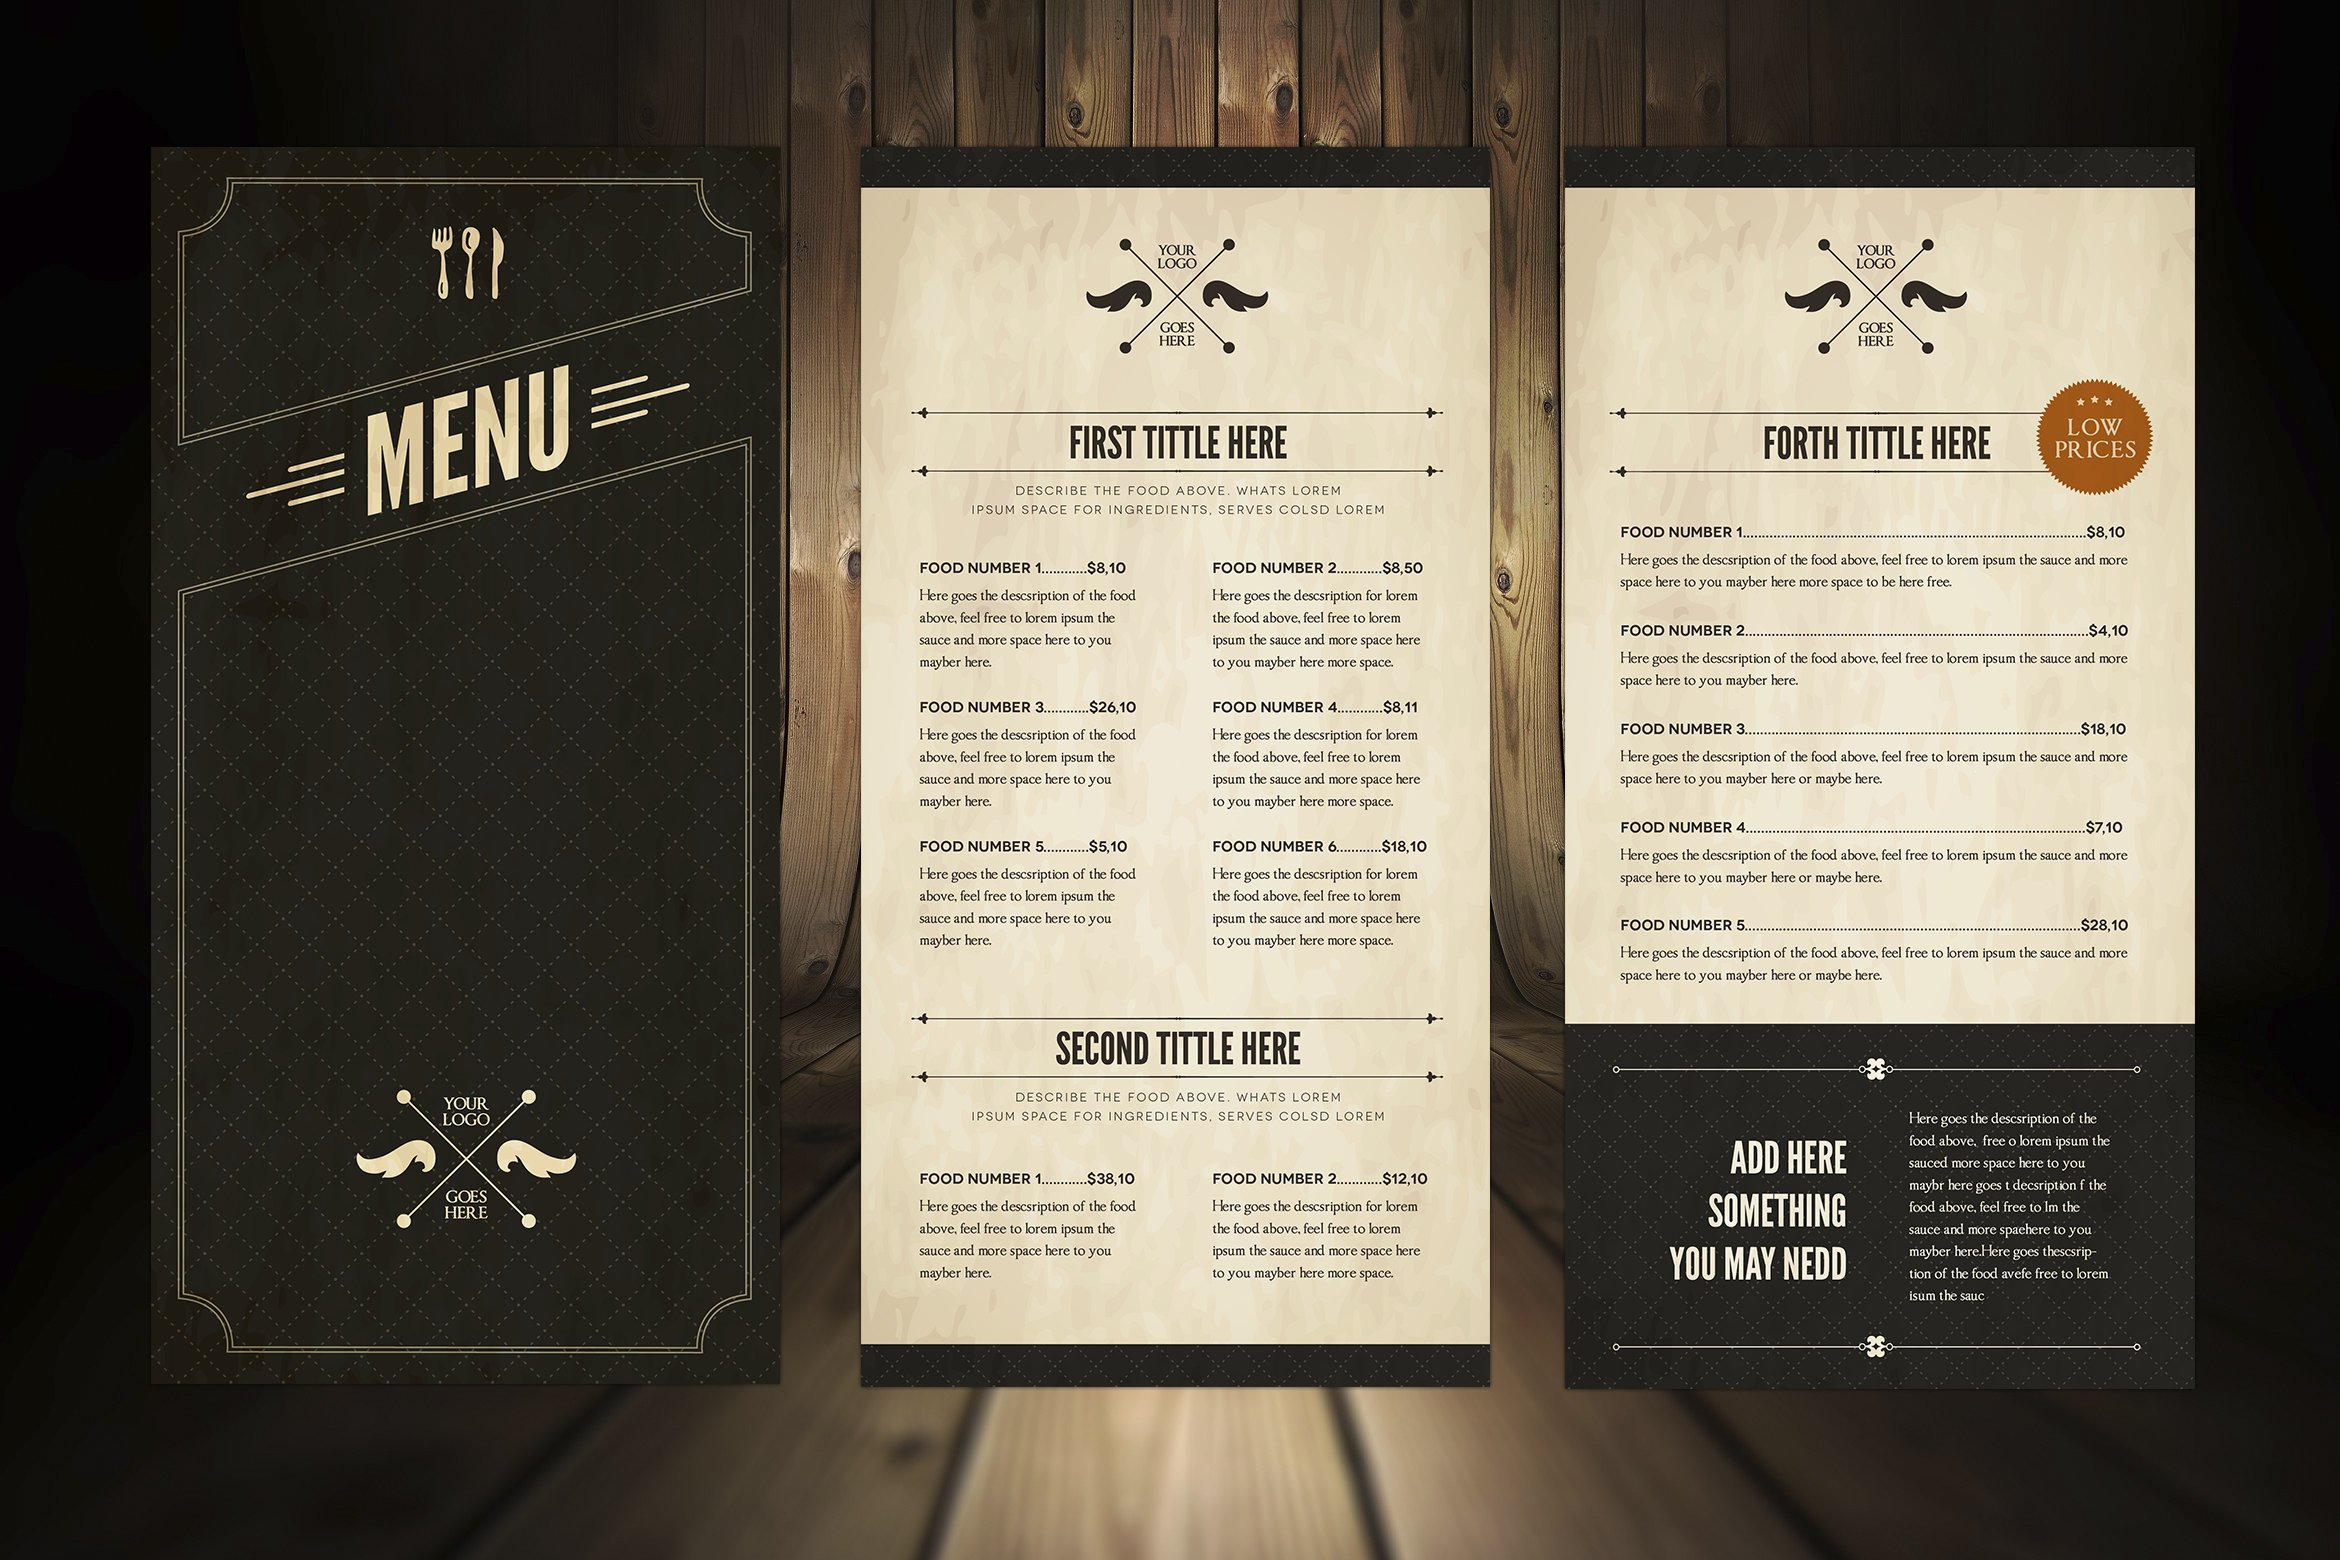 elegant food menu 5 - Restaurant Menu Design Ideas